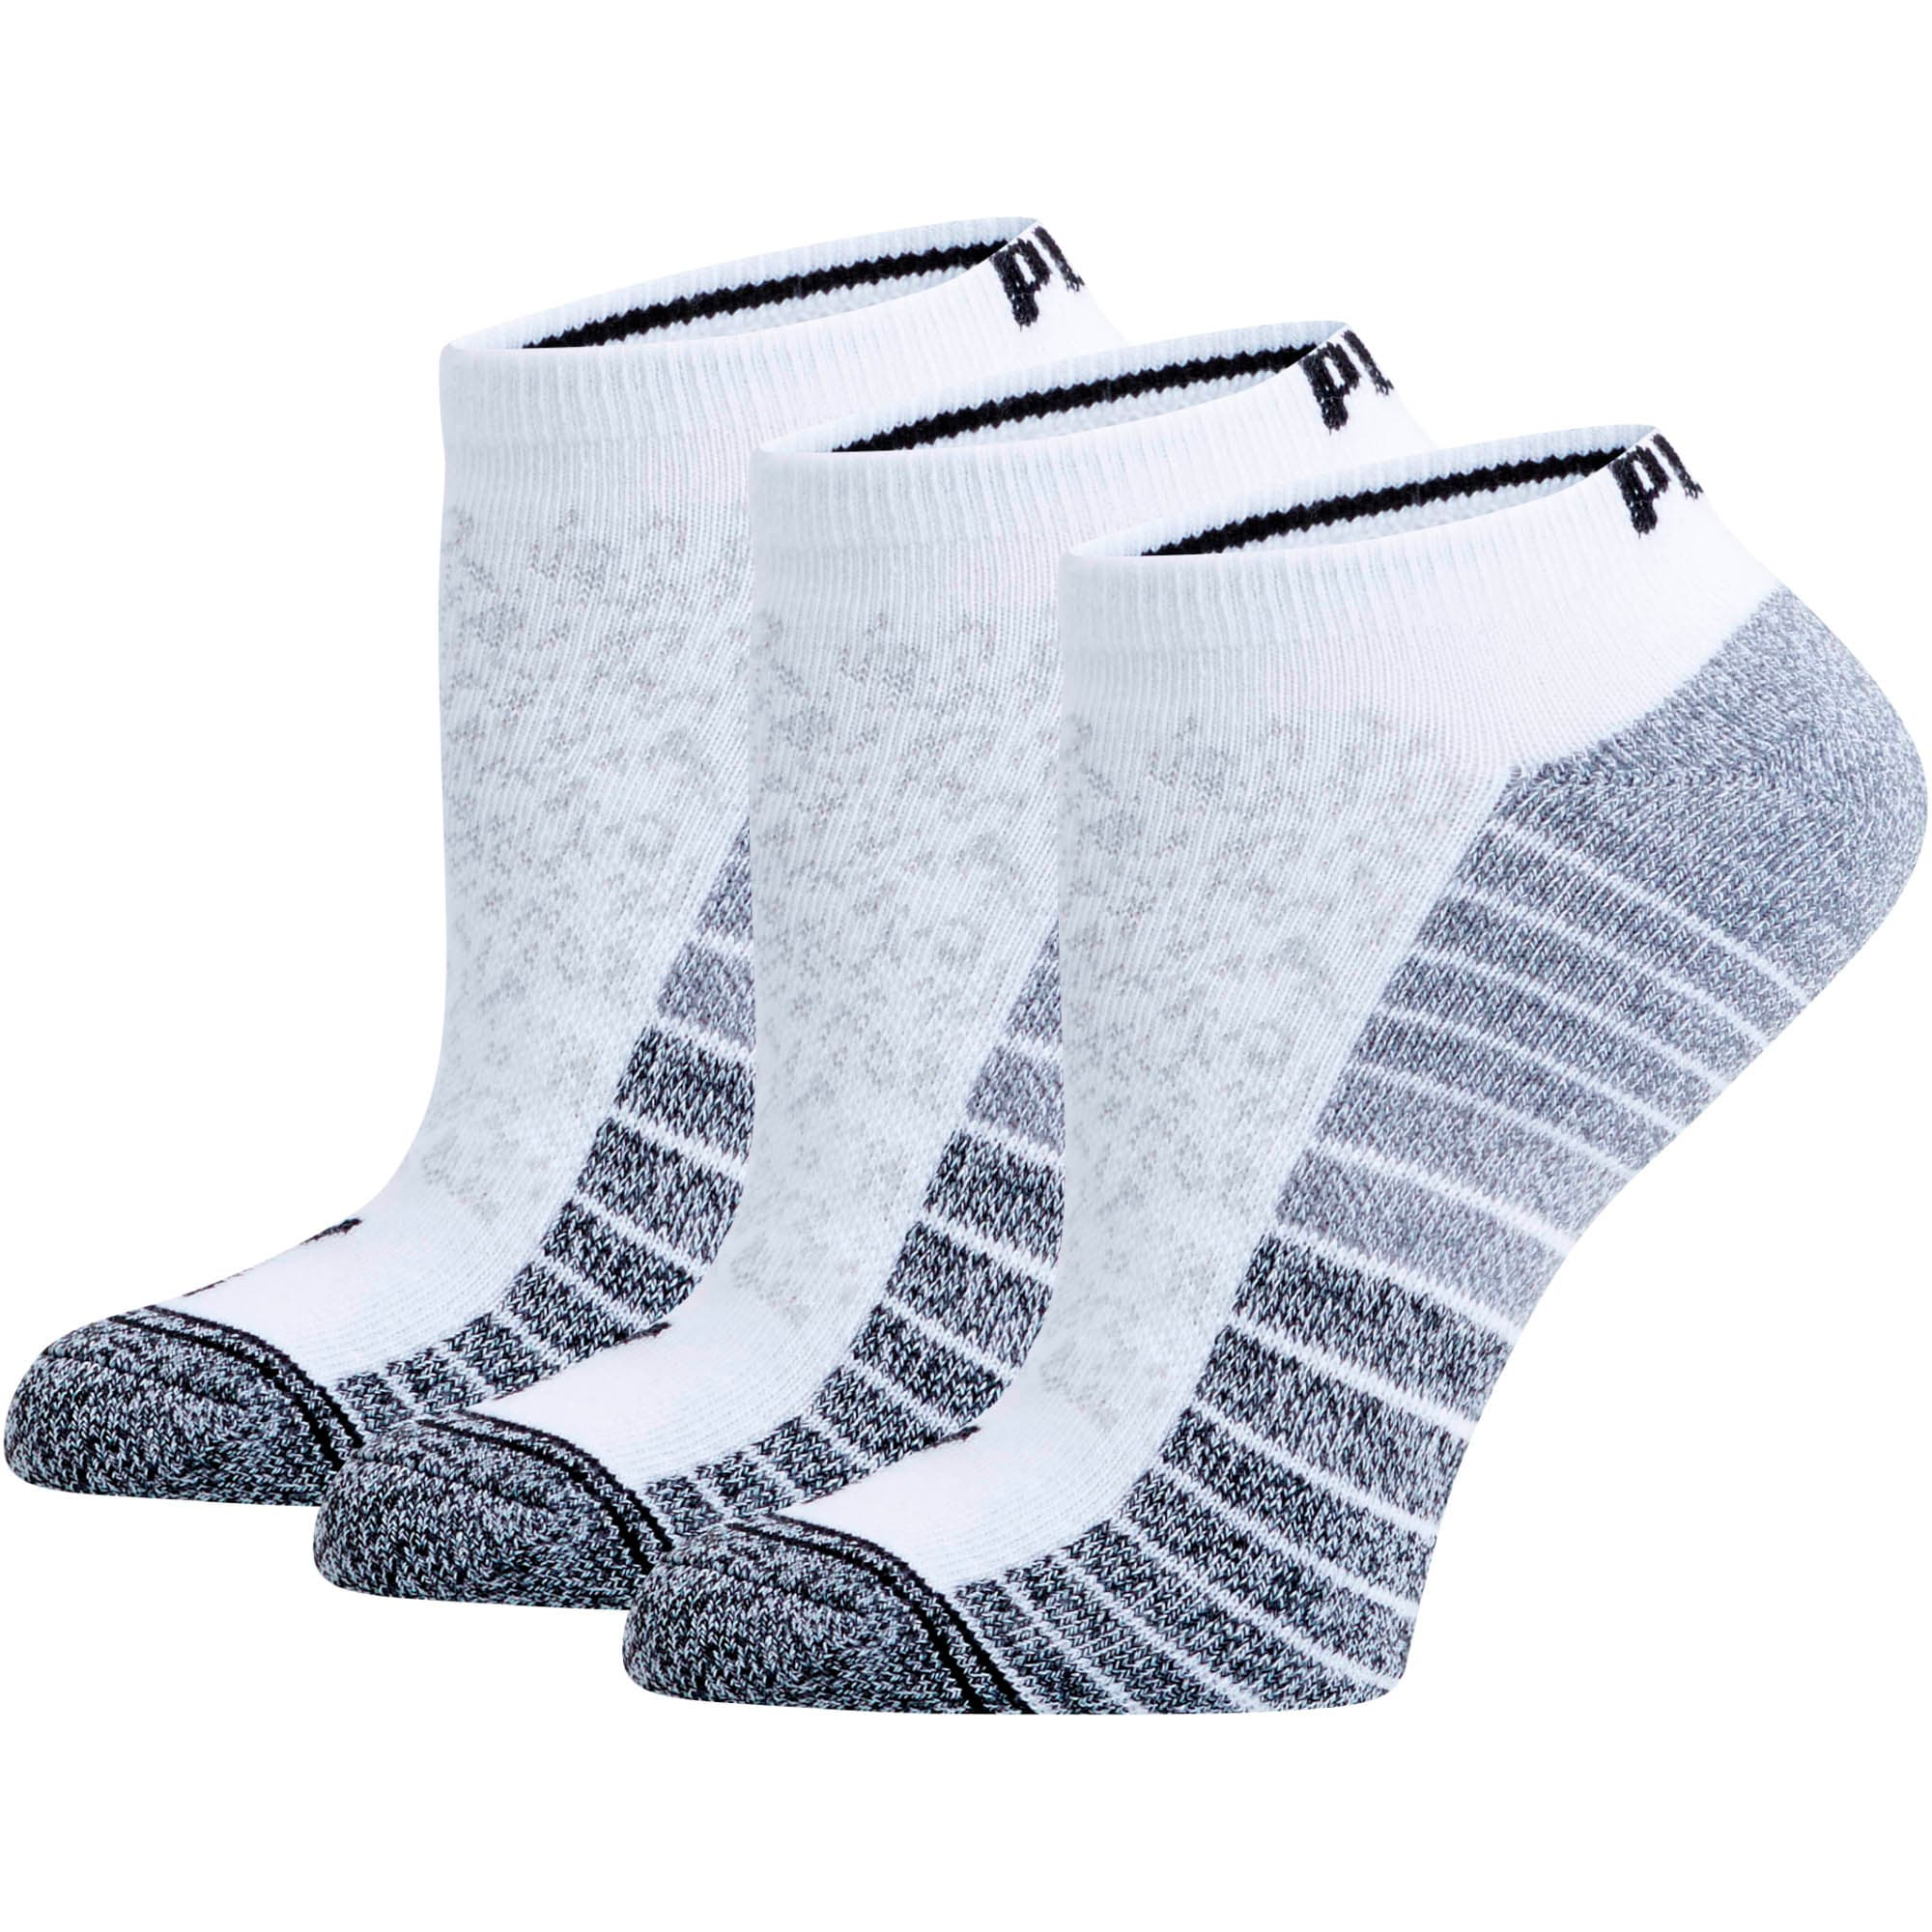 Thumbnail 1 of Women's Low Cut Socks [3 Pack], WHITE, medium